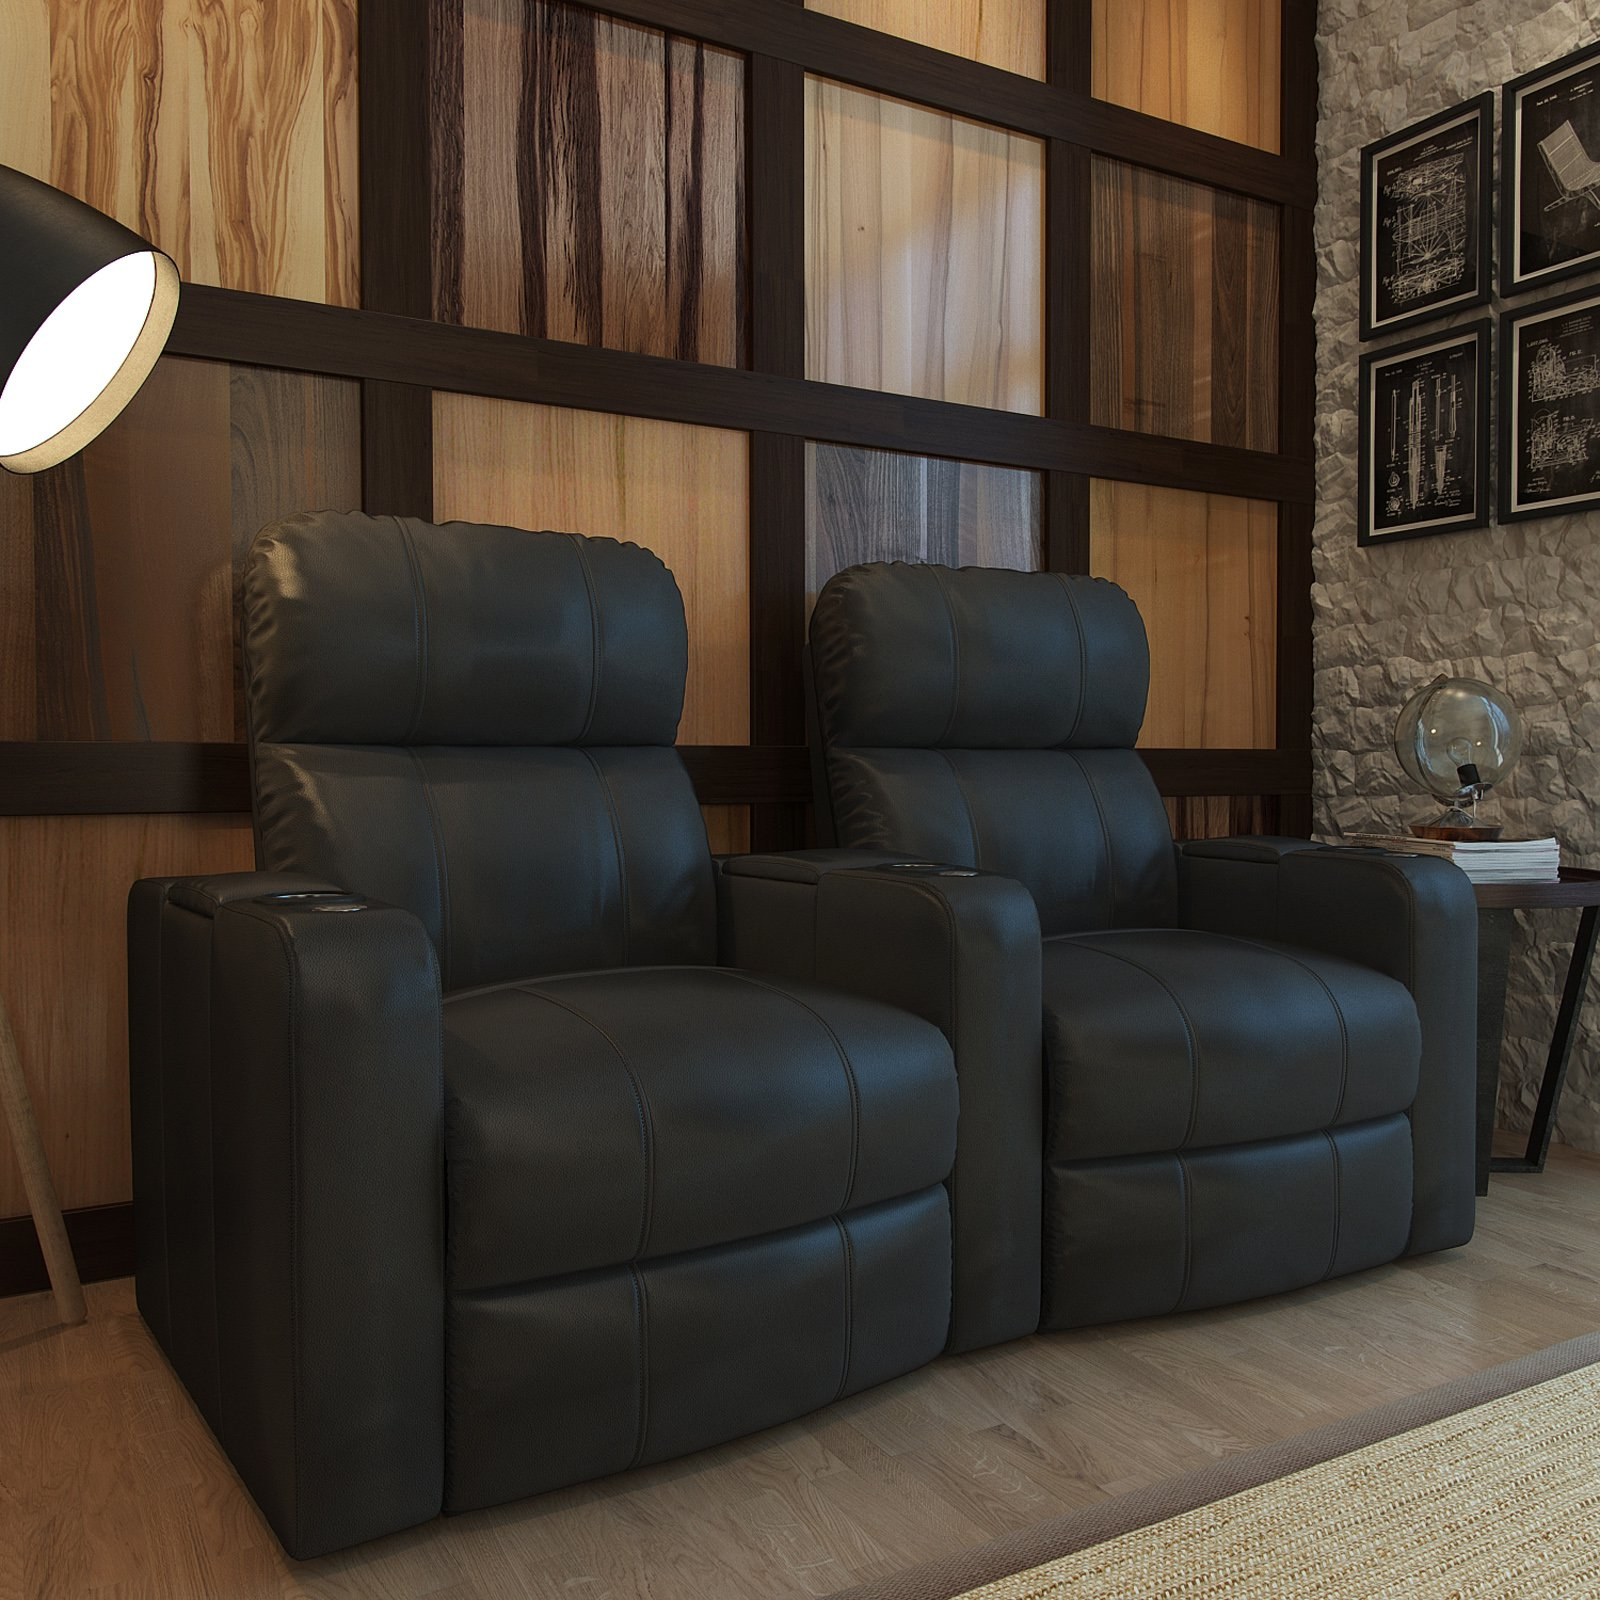 Octane Turbo XL700 2 Seater Curved Bonded Leather Home Theater Seating